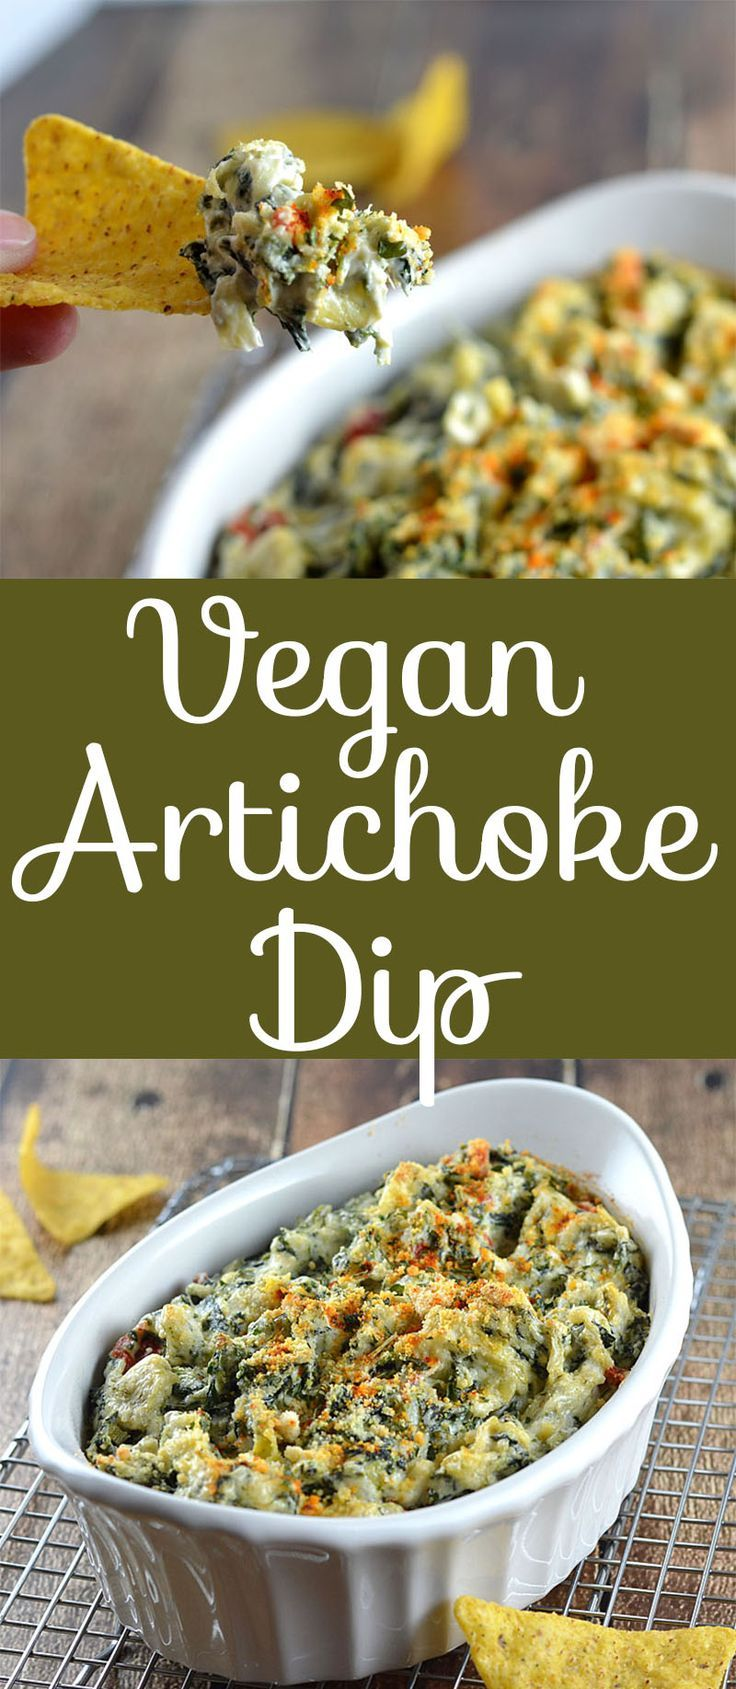 Vegan Baked Spinach and Artichoke Dip by The Veg Life!